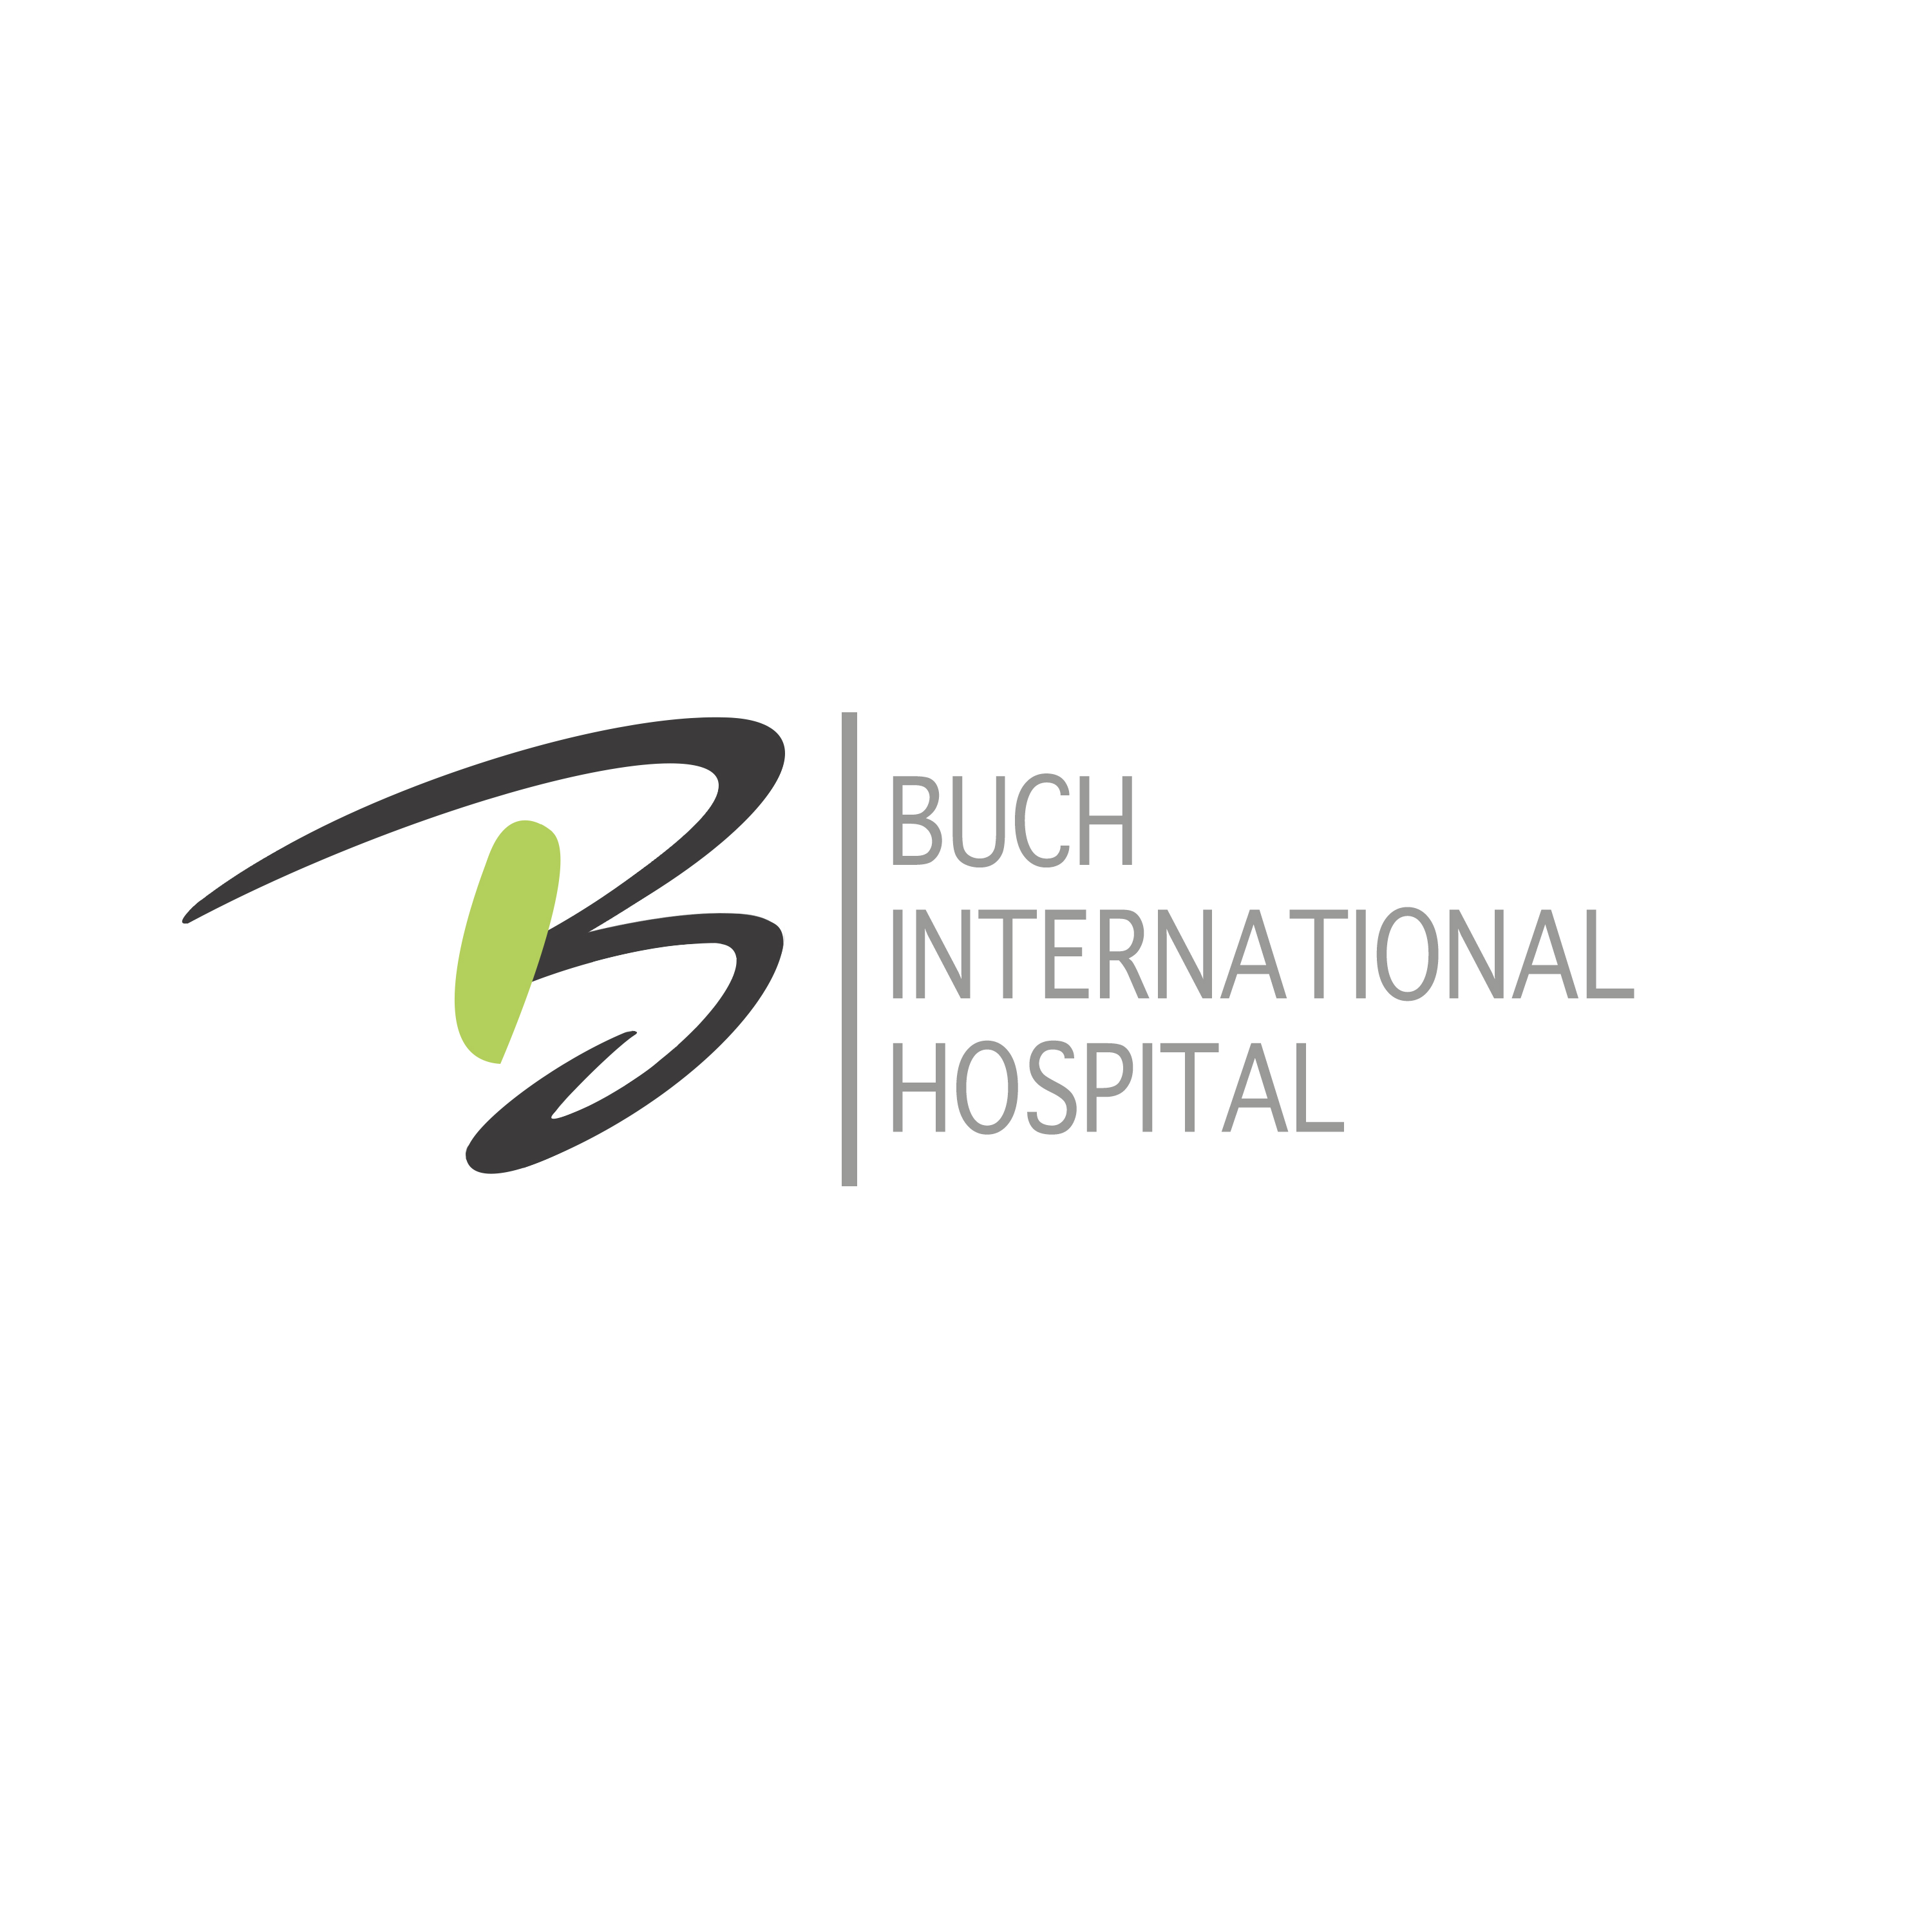 Buch International Hospital Logo